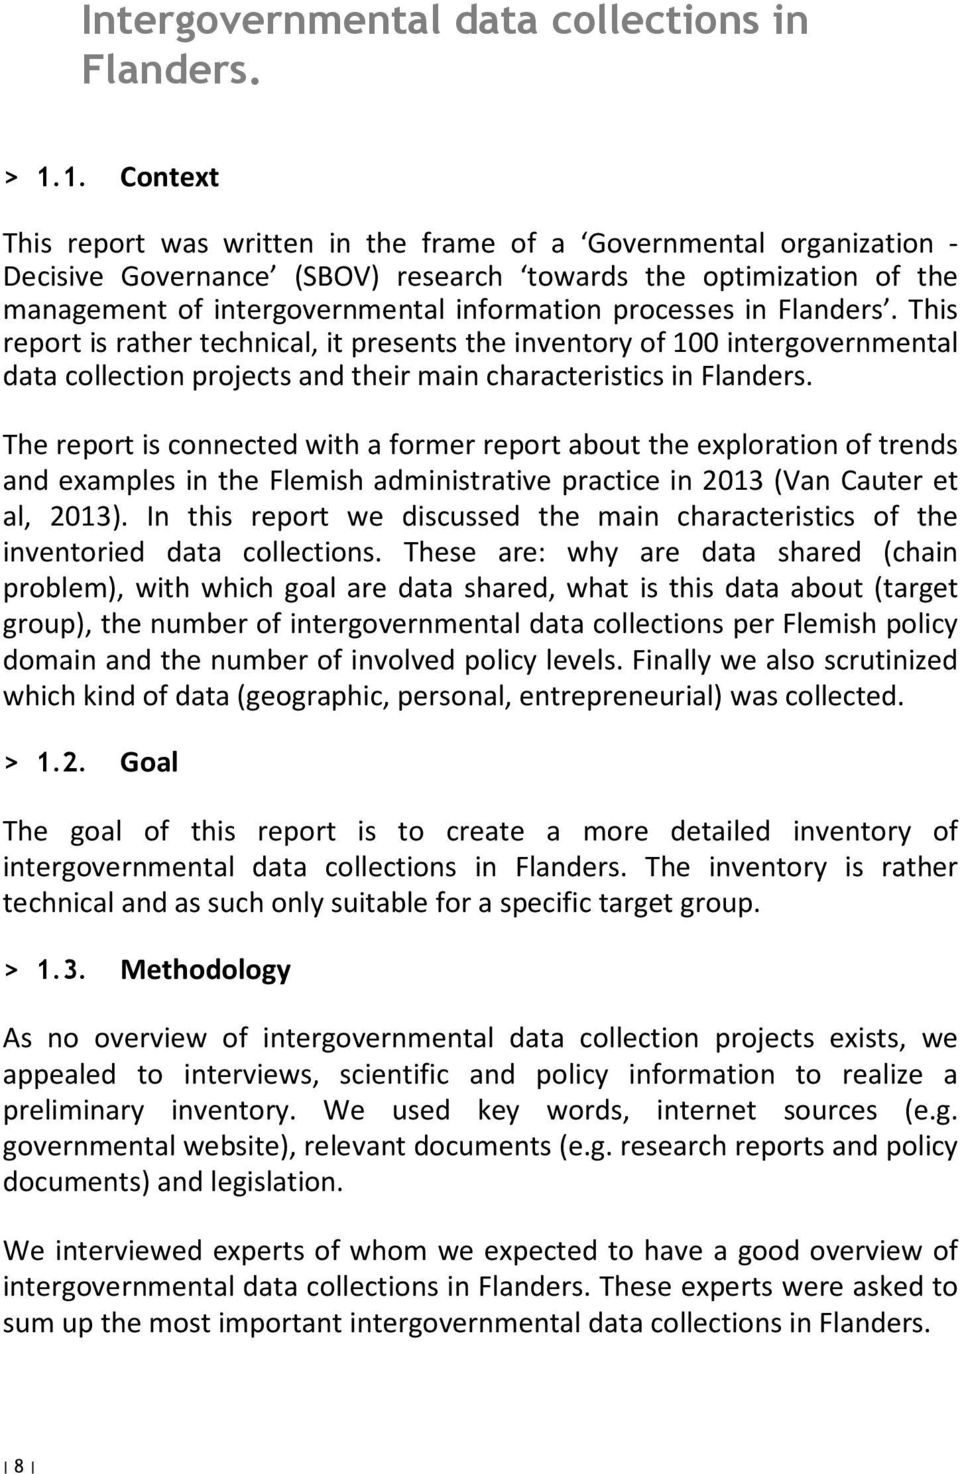 processes in Flanders. This report is rather technical, it presents the inventory of 100 intergovernmental data collection projects and their main characteristics in Flanders.